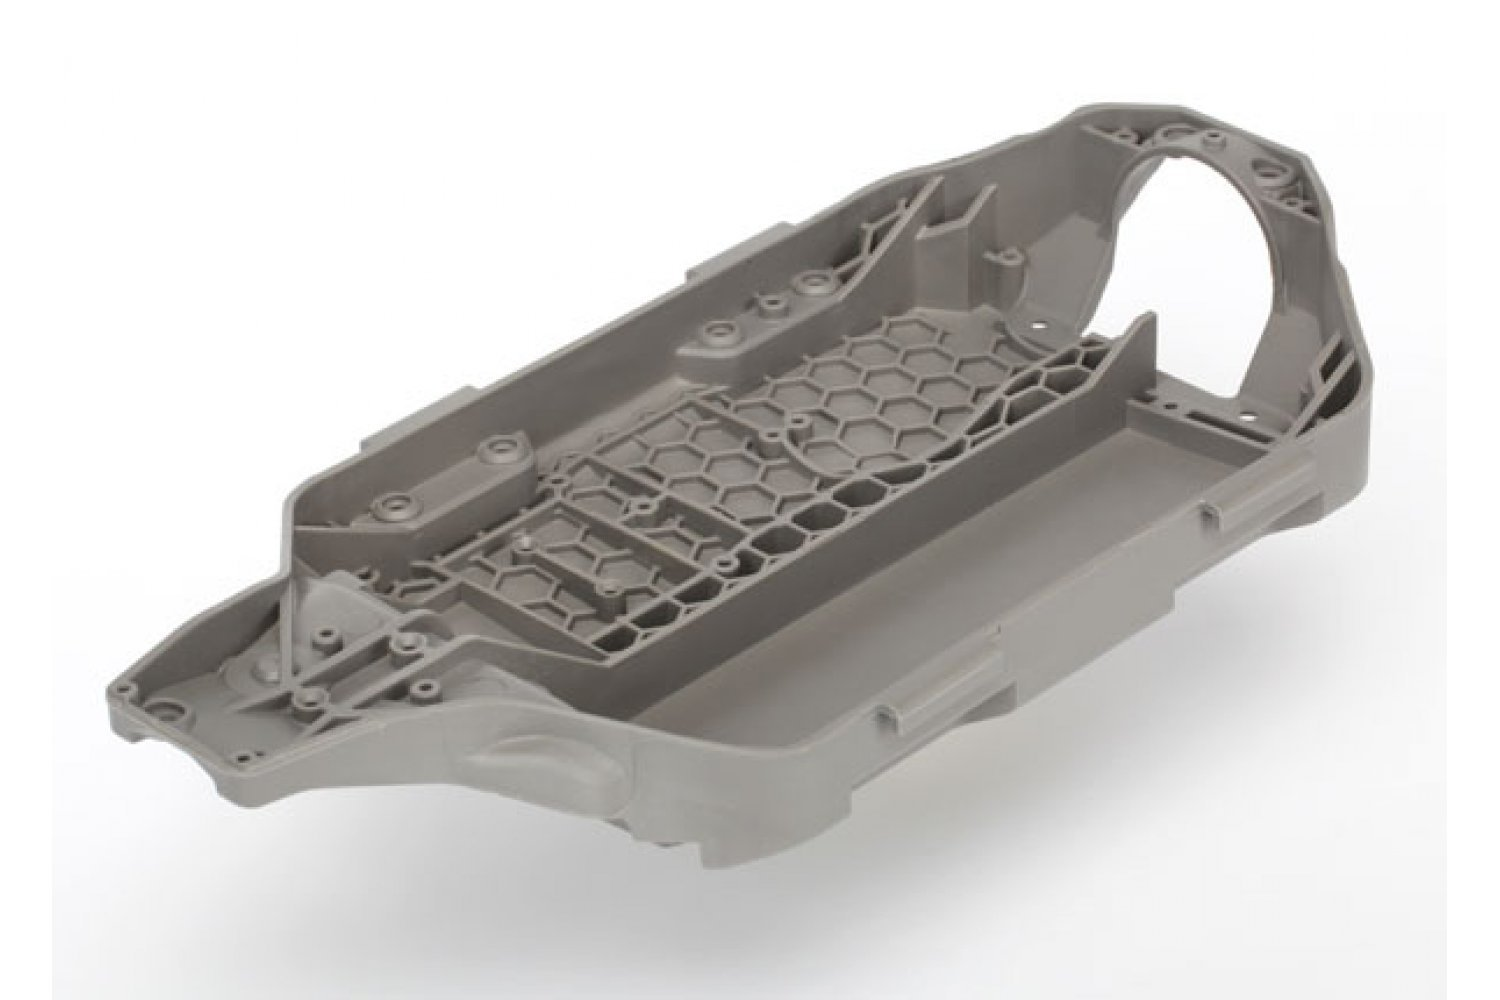 low cg chassis design - HD1500×1000